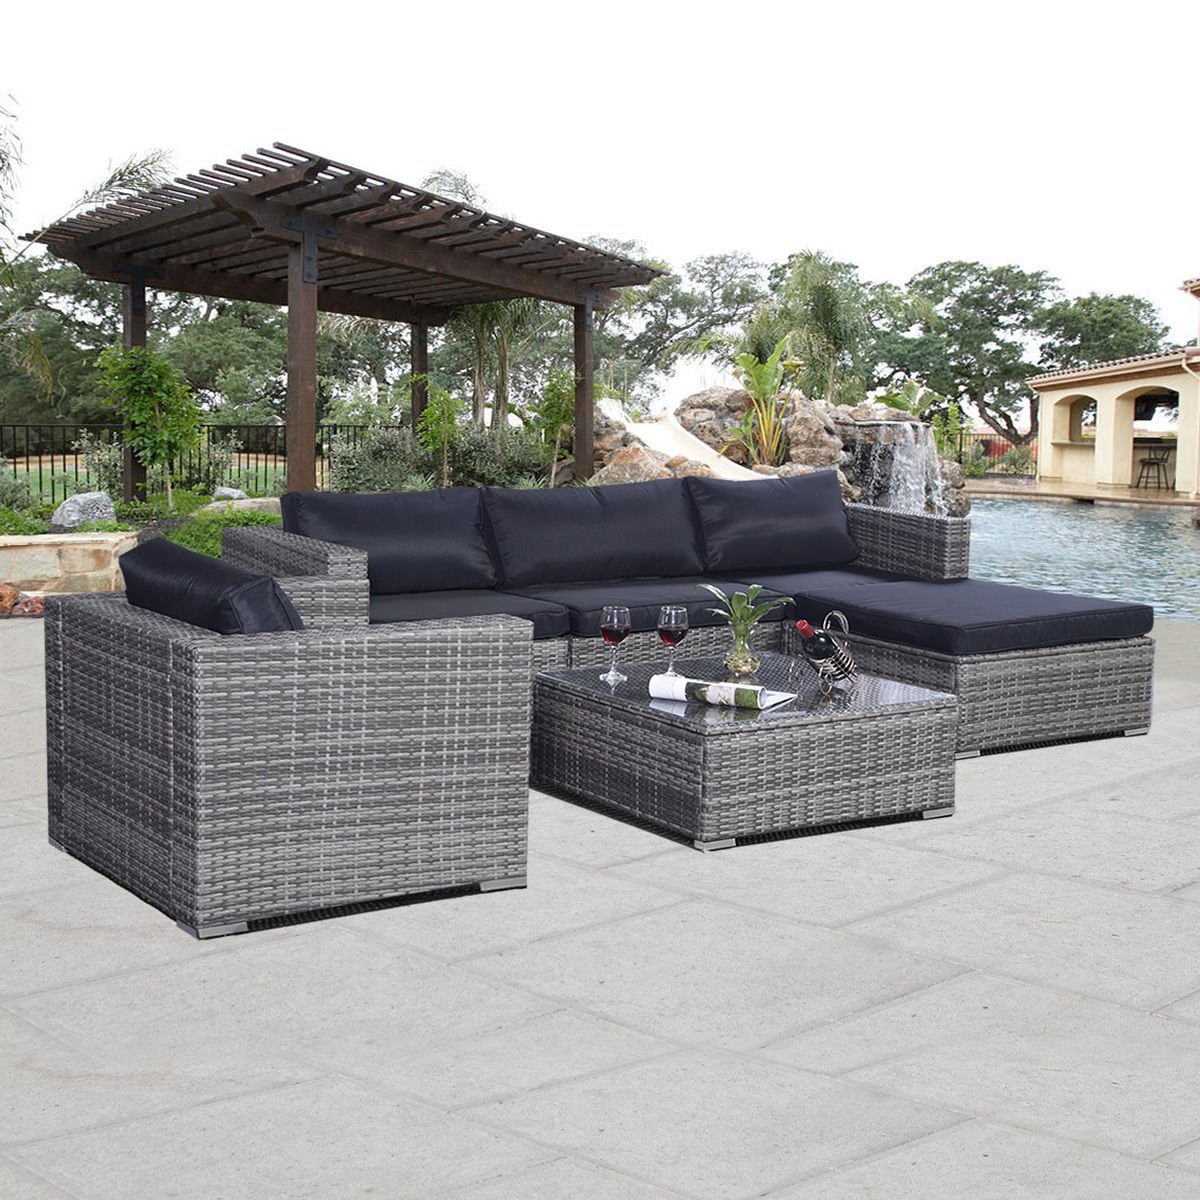 Amazon.com : Giantex 6pc Patio Sofa Furniture Set Pe Rattan Couch Outdoor  Aluminum Cushioned Gray : Garden U0026 Outdoor